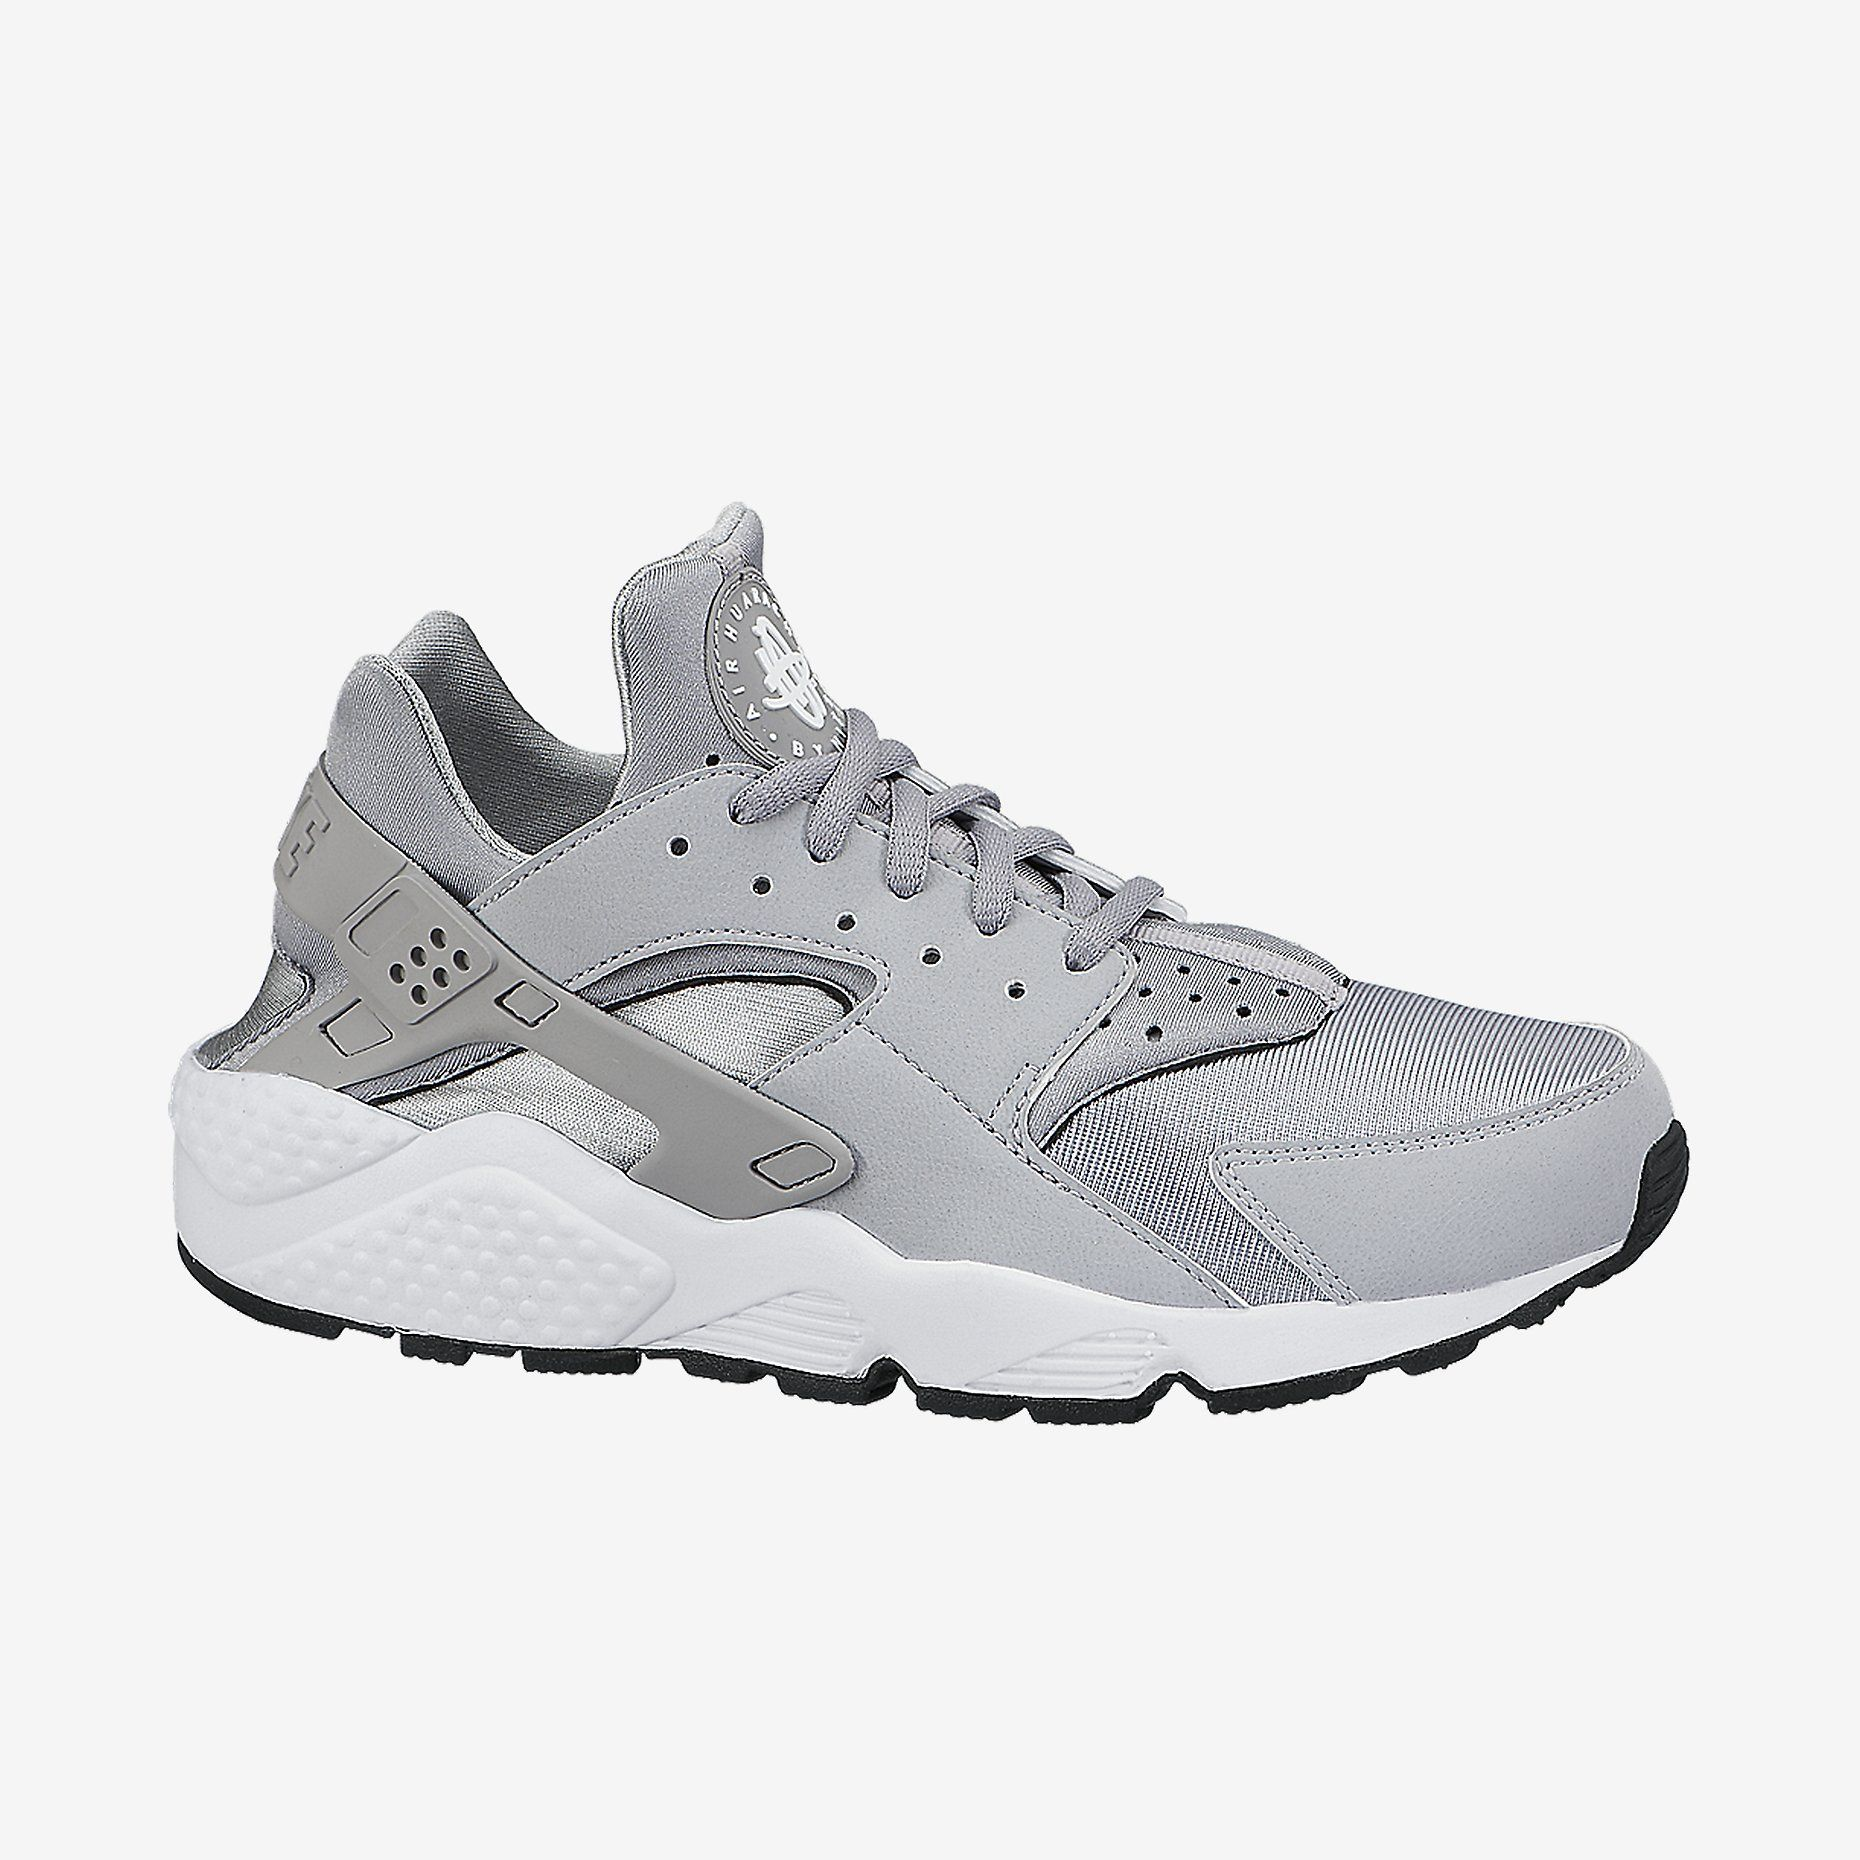 UK Shoes Store - NIKE AIR Huarache RUN